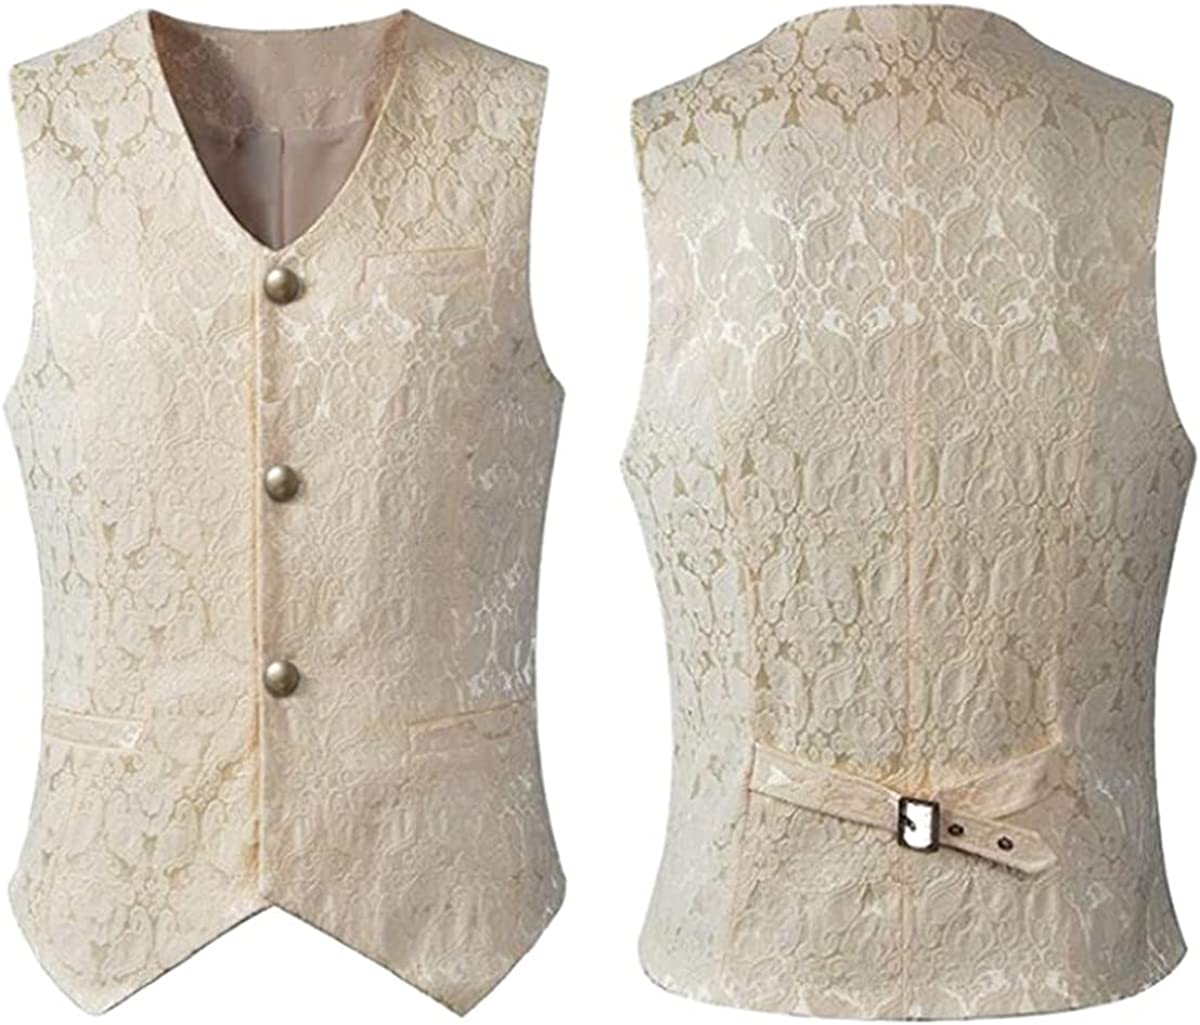 Men's Jacquard Single-Breasted Vest Tuxedo Gothic Steampunk 2021 model Clearance SALE! Limited time!